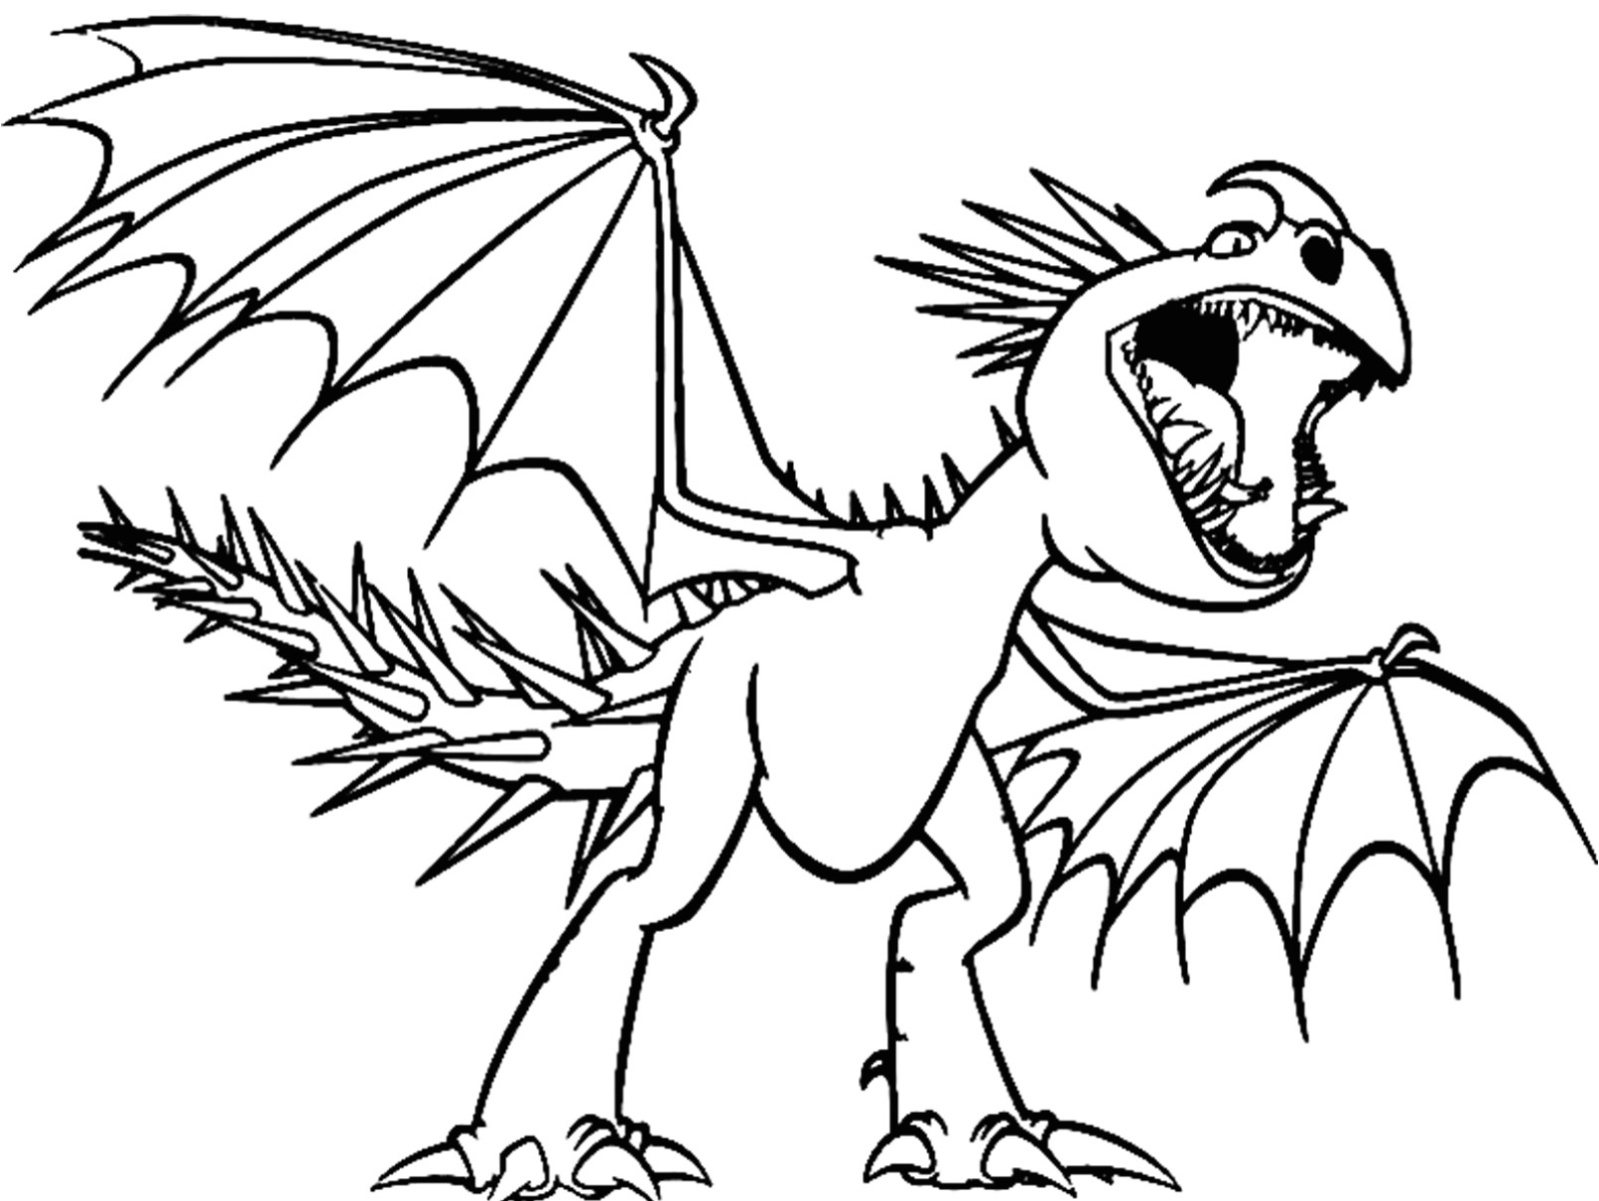 dragons 3 coloring pages coloring pages how to train your dragon 3 best collection 3 dragons coloring pages